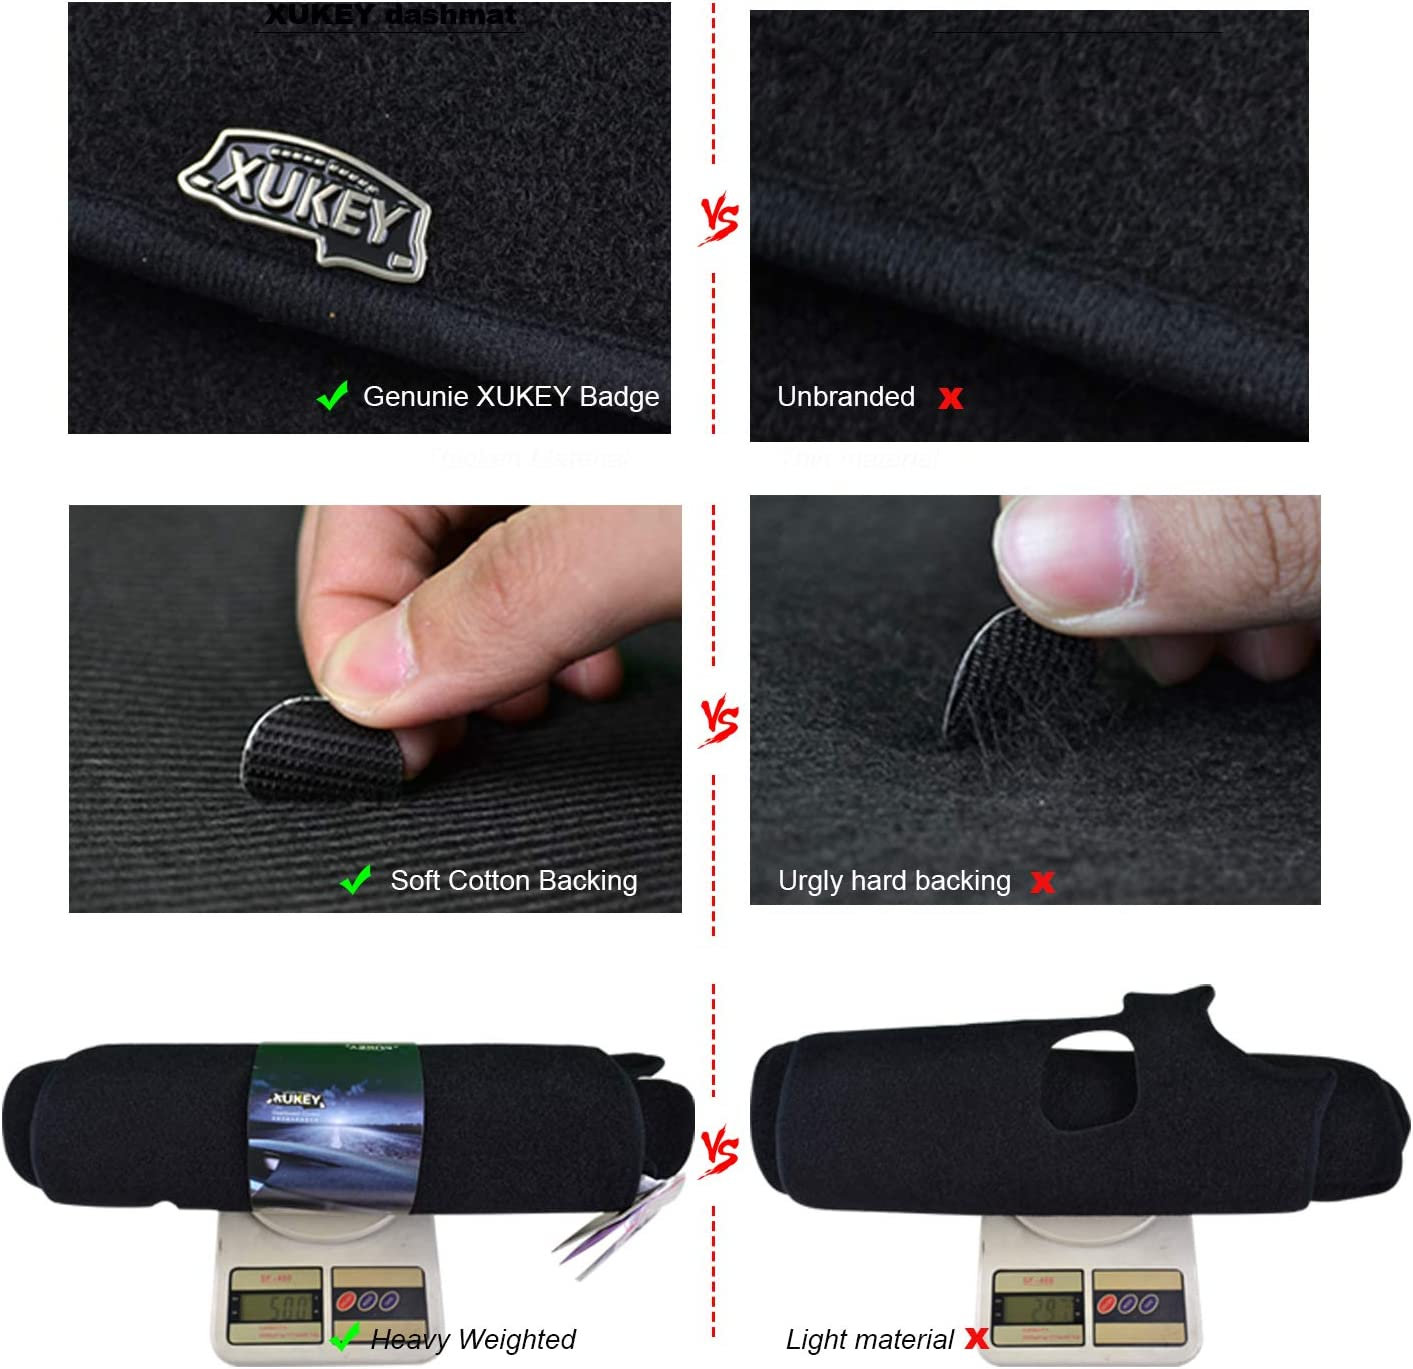 XUKEY Dash Cover Mat Dashmat Dashboard Cover for Nissan Altima teana 2013-2018 L33